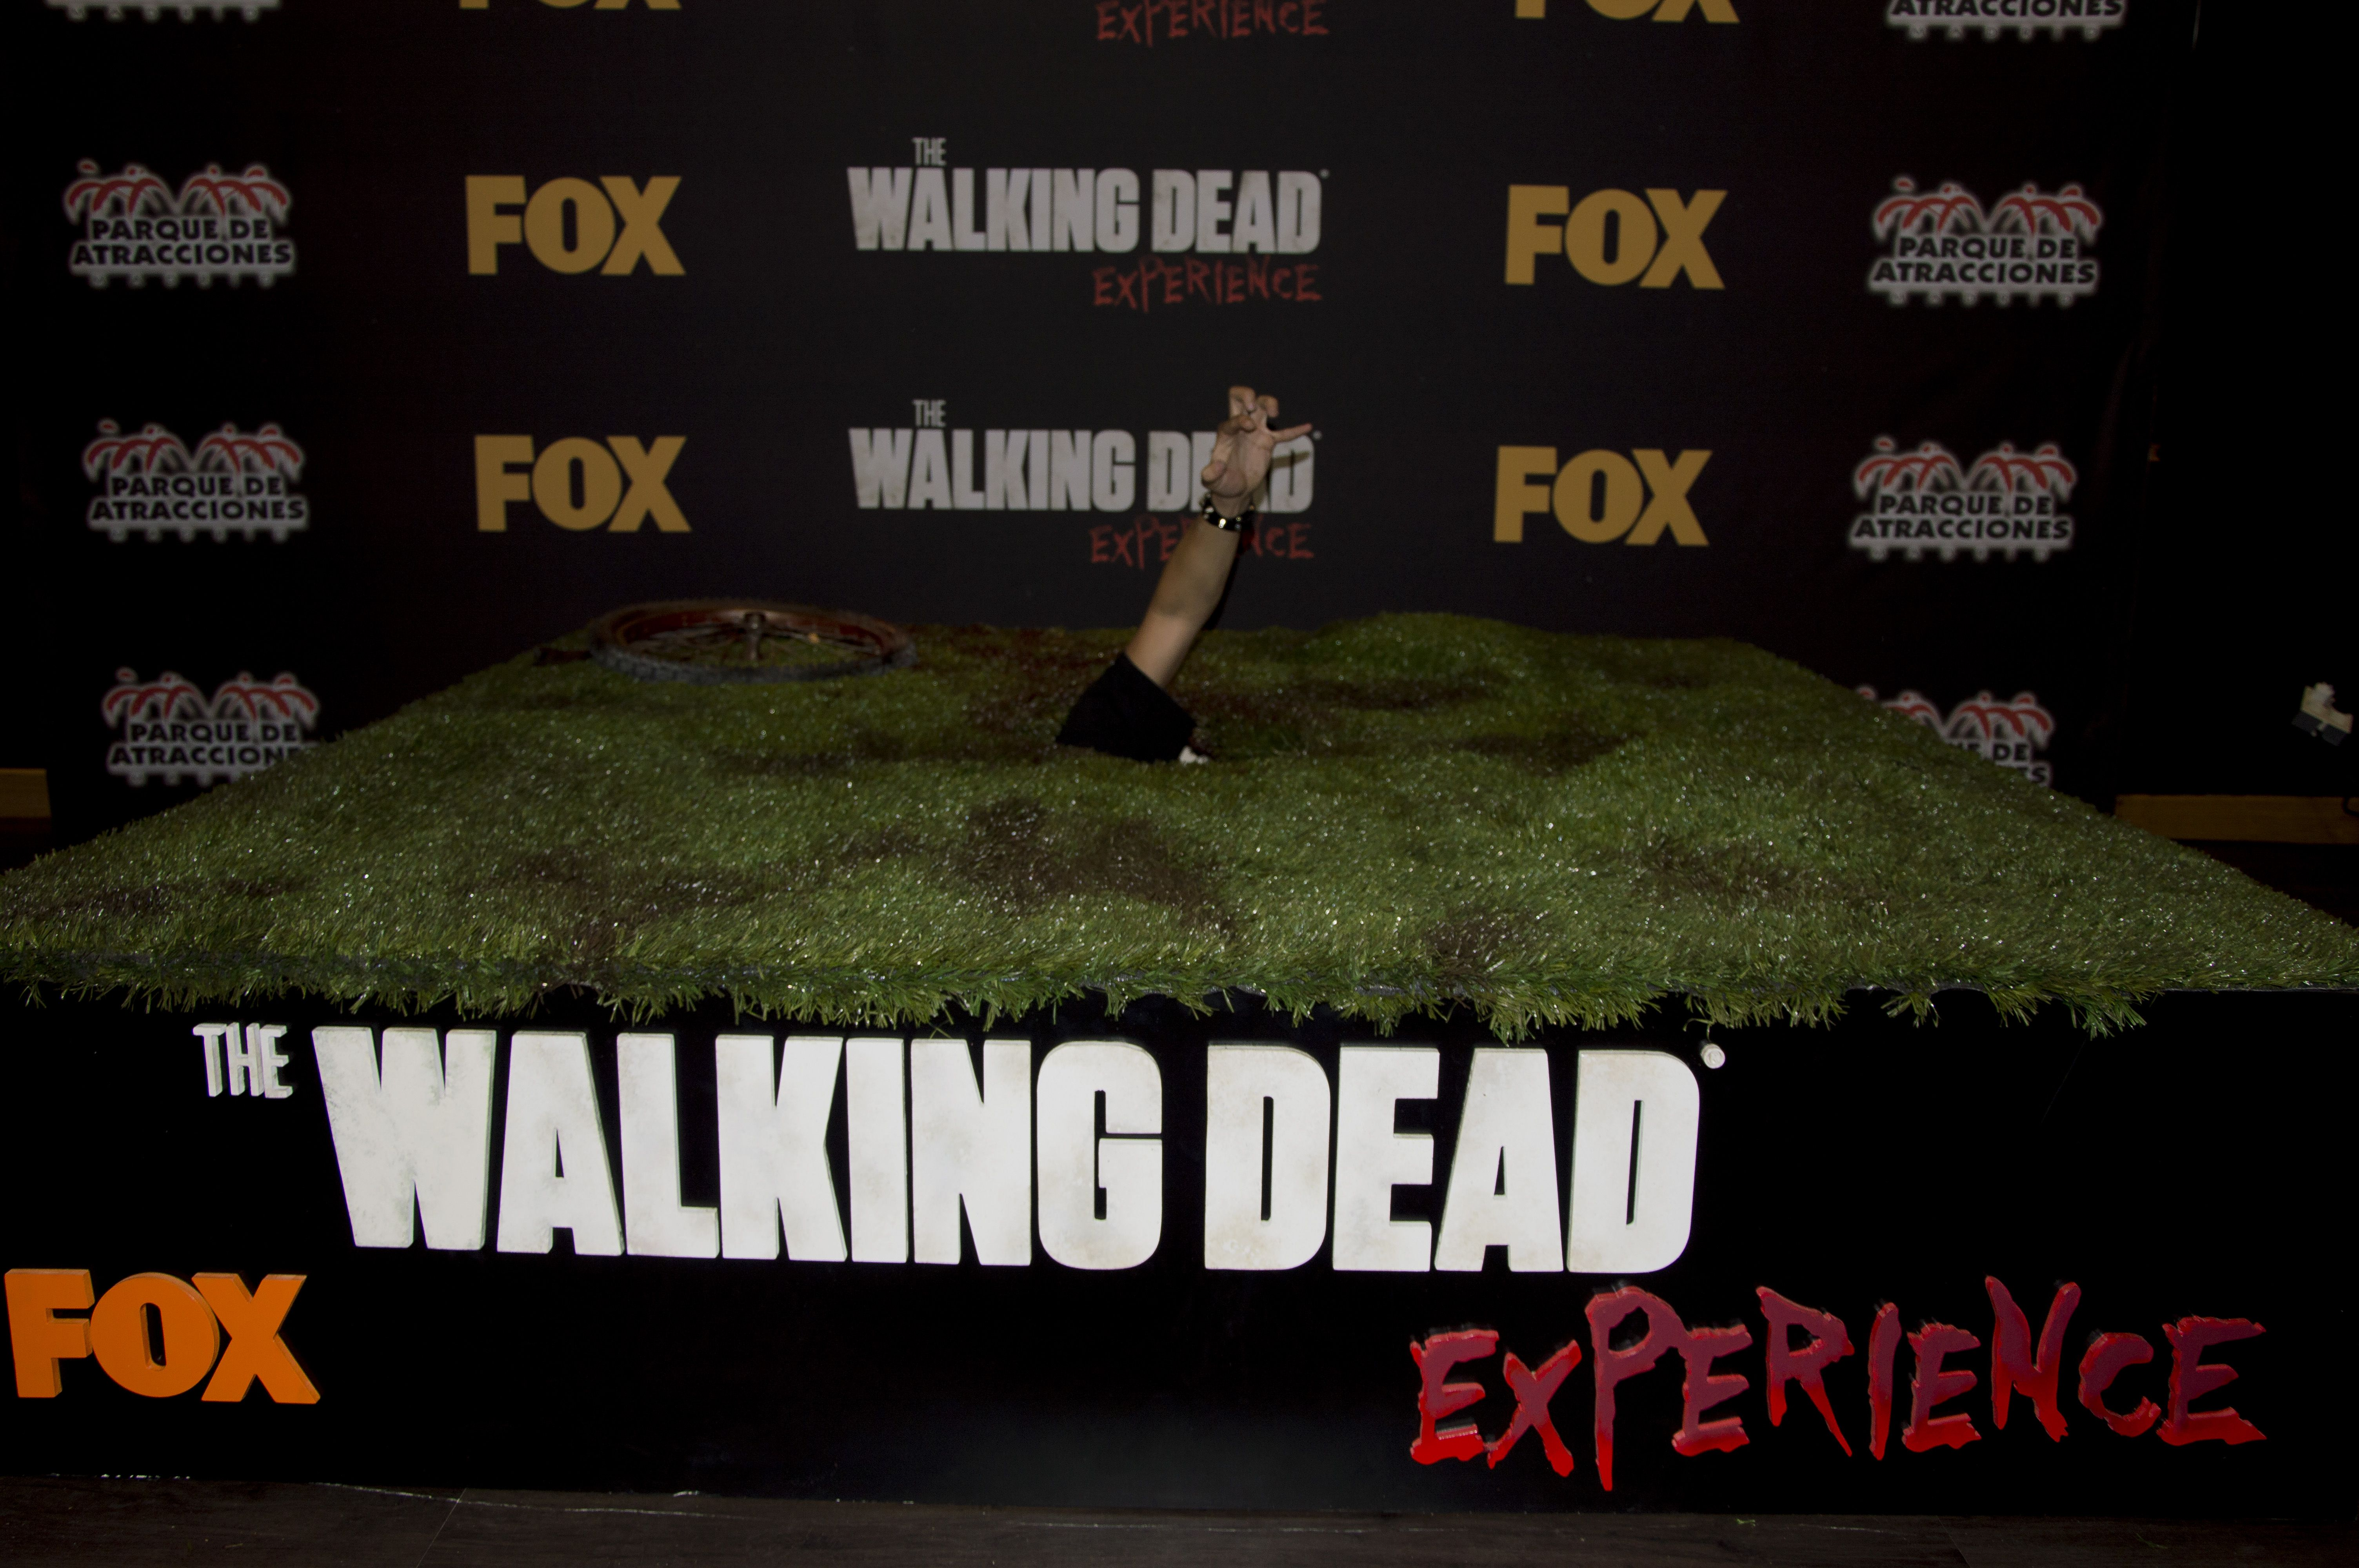 The #WalkingDead Experience